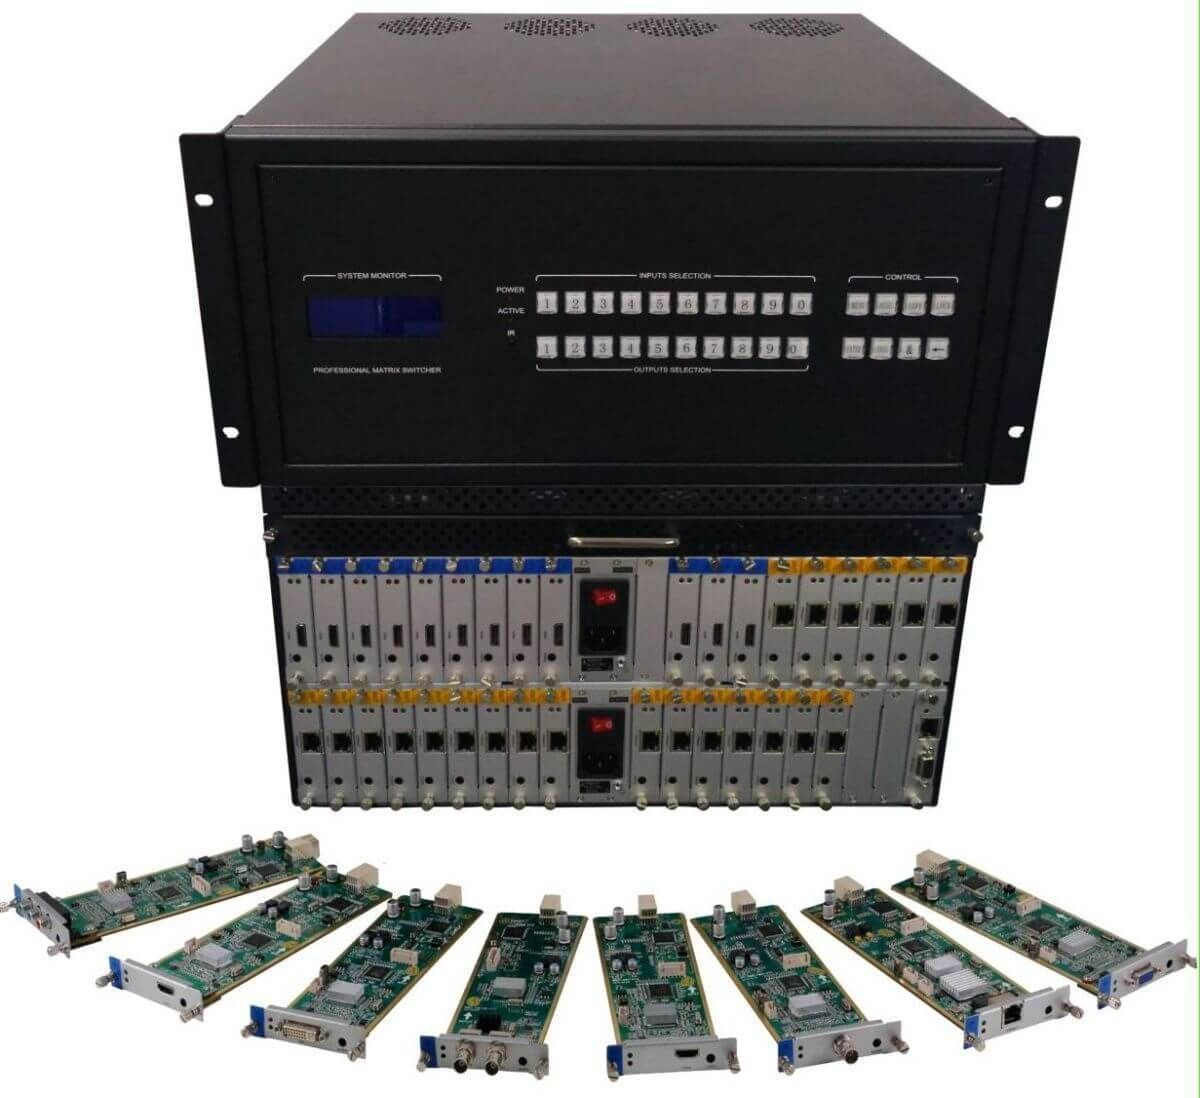 24x32 HDMI Matrix Switcher with Video Wall Processor